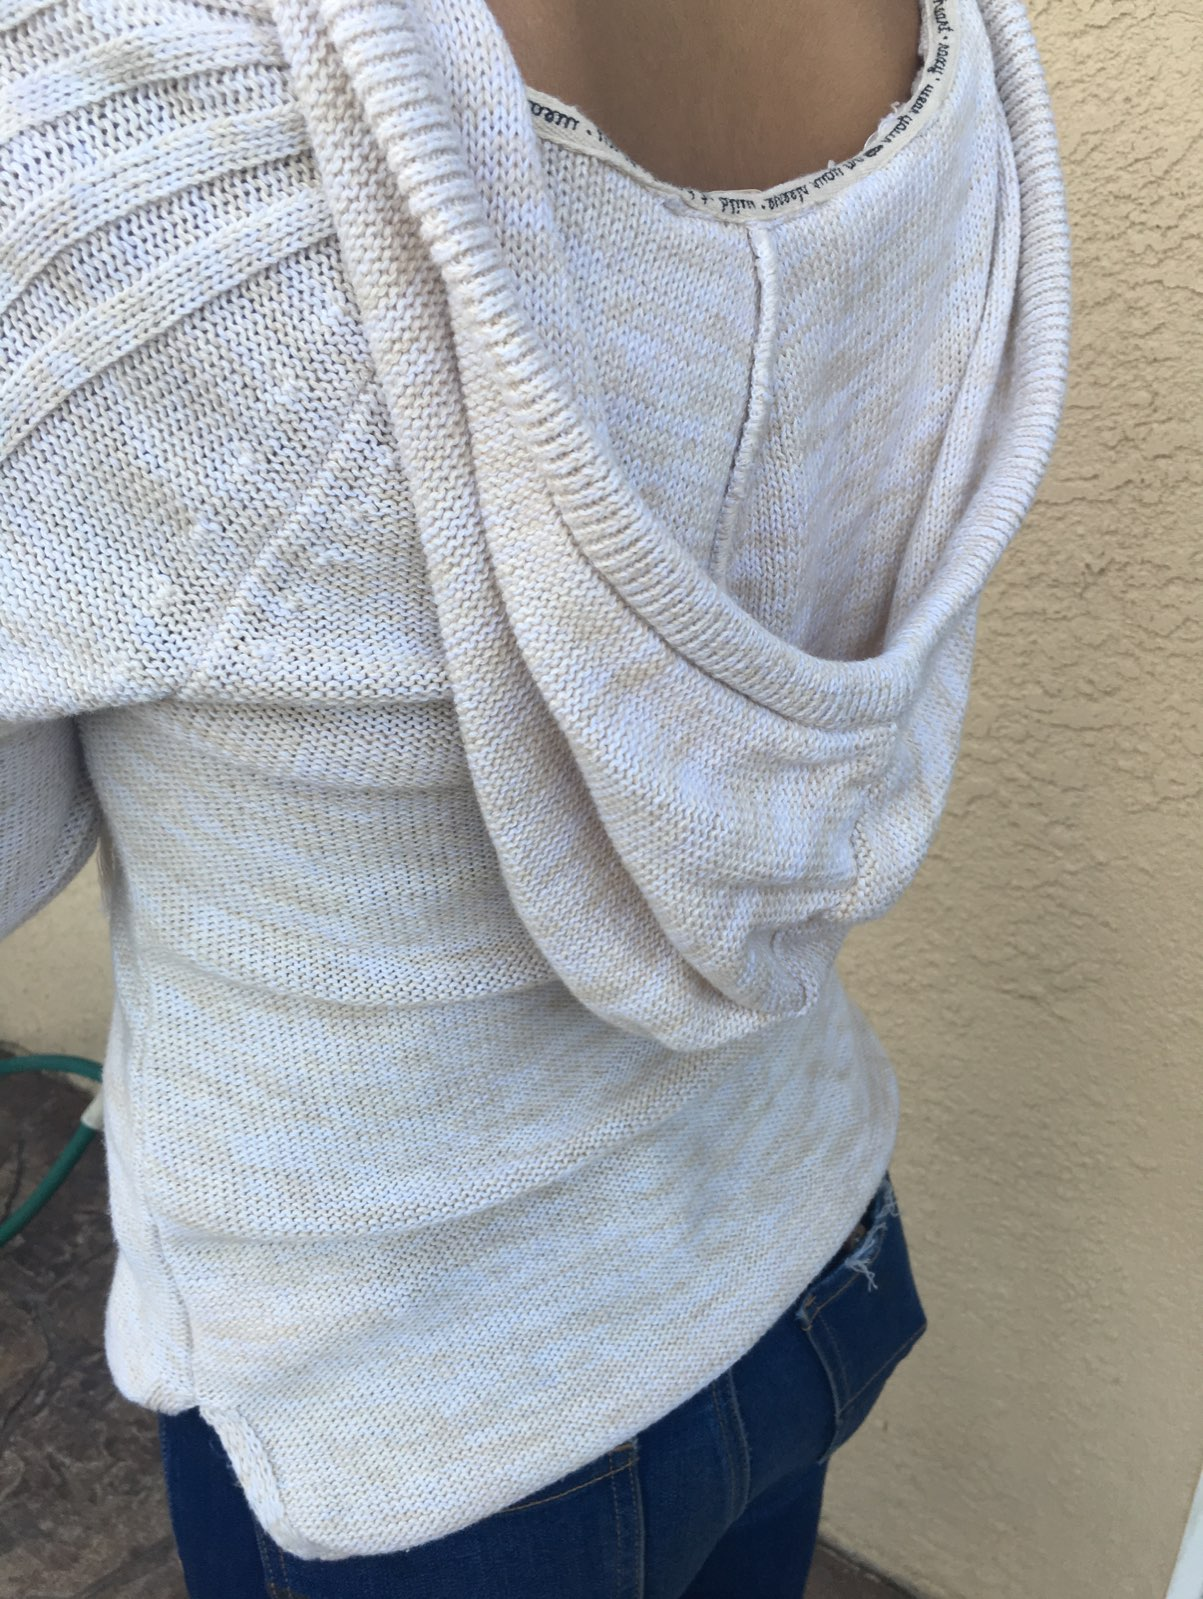 Cream Colored Knit Sweater - Mercari: BUY & SELL THINGS YOU LOVE